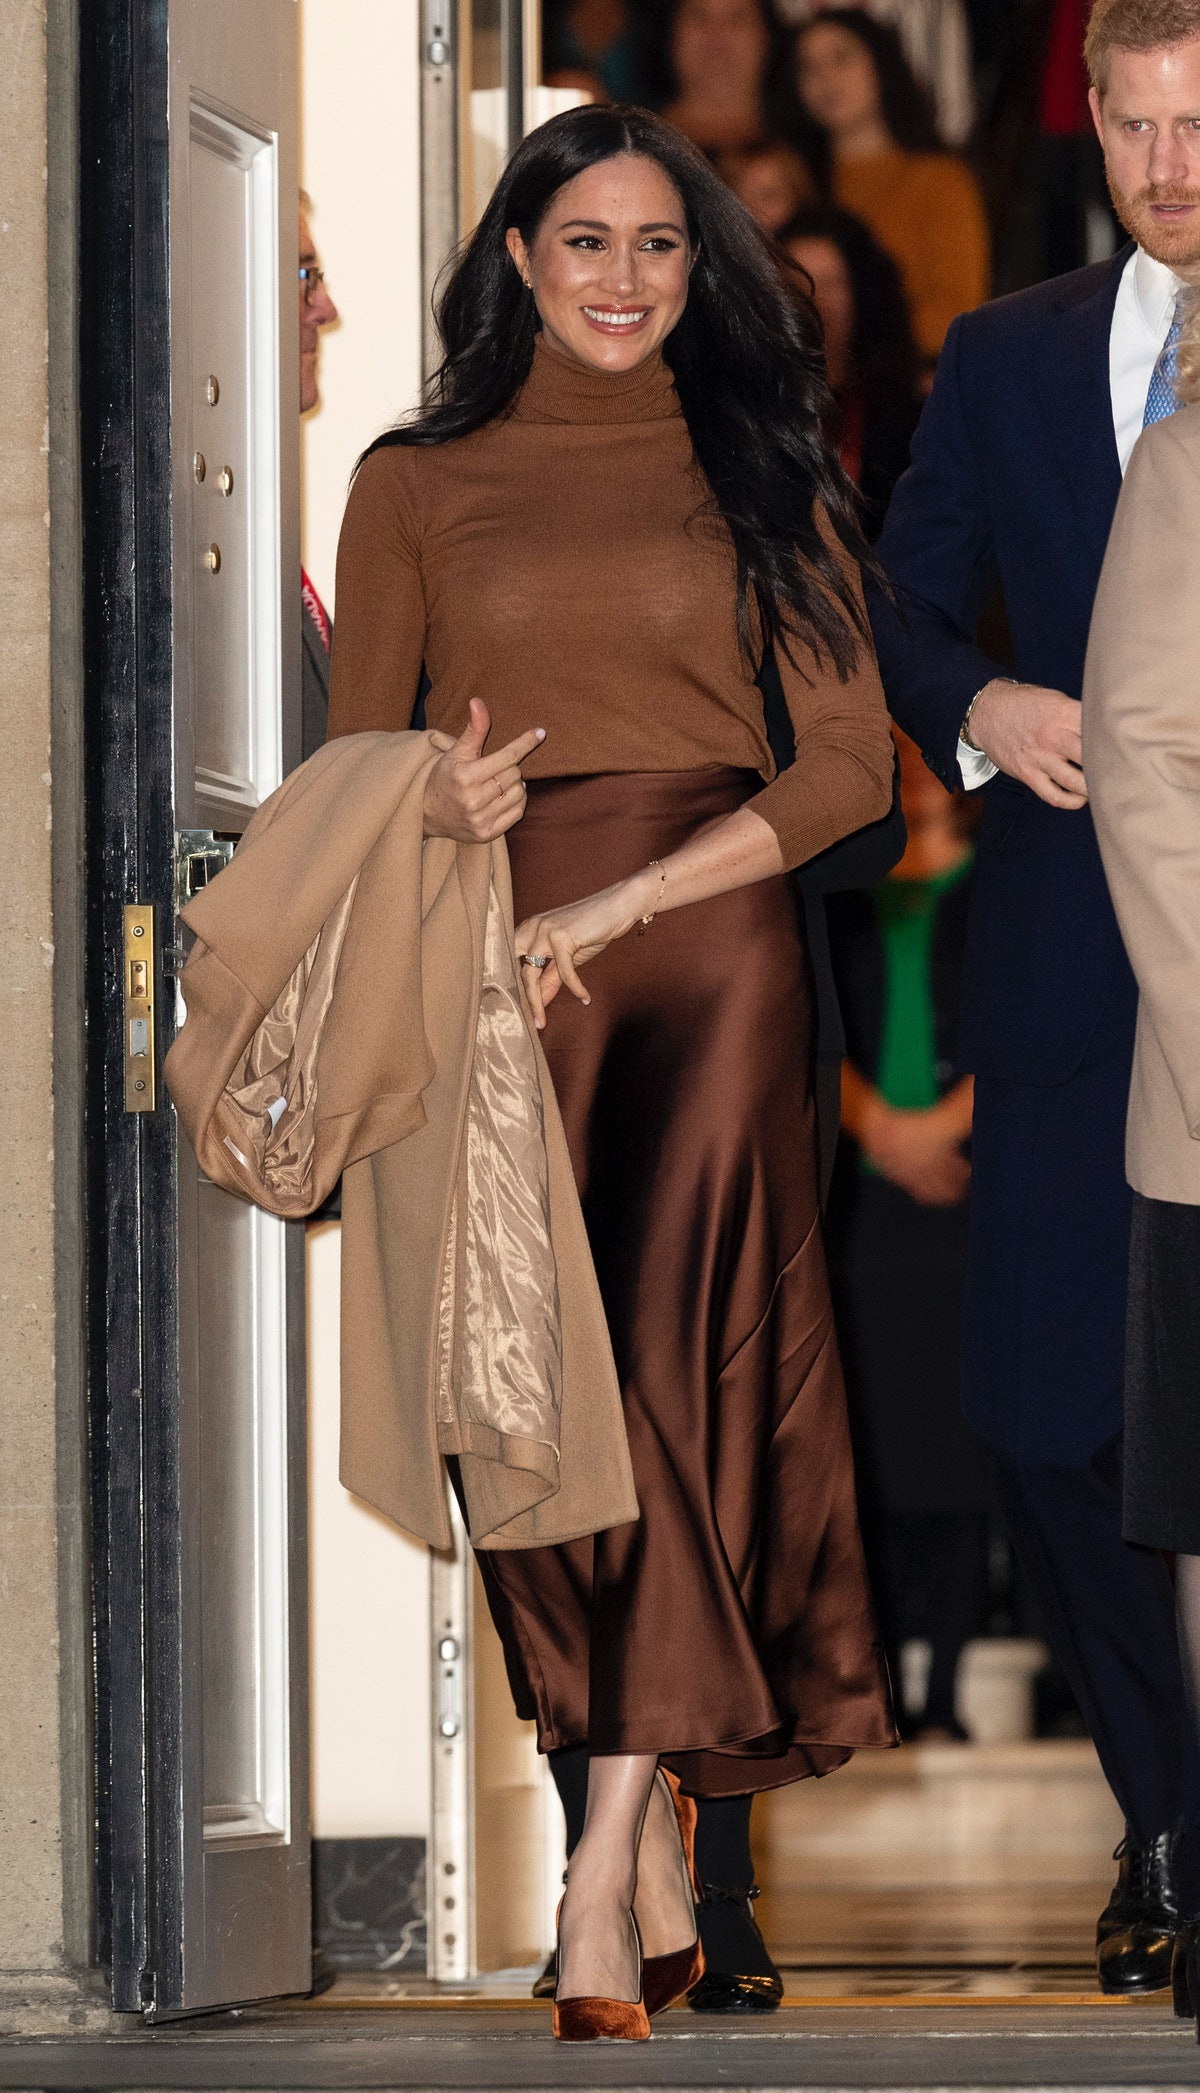 The Duchess of Sussex visits Canada House in London, England in January 2020.